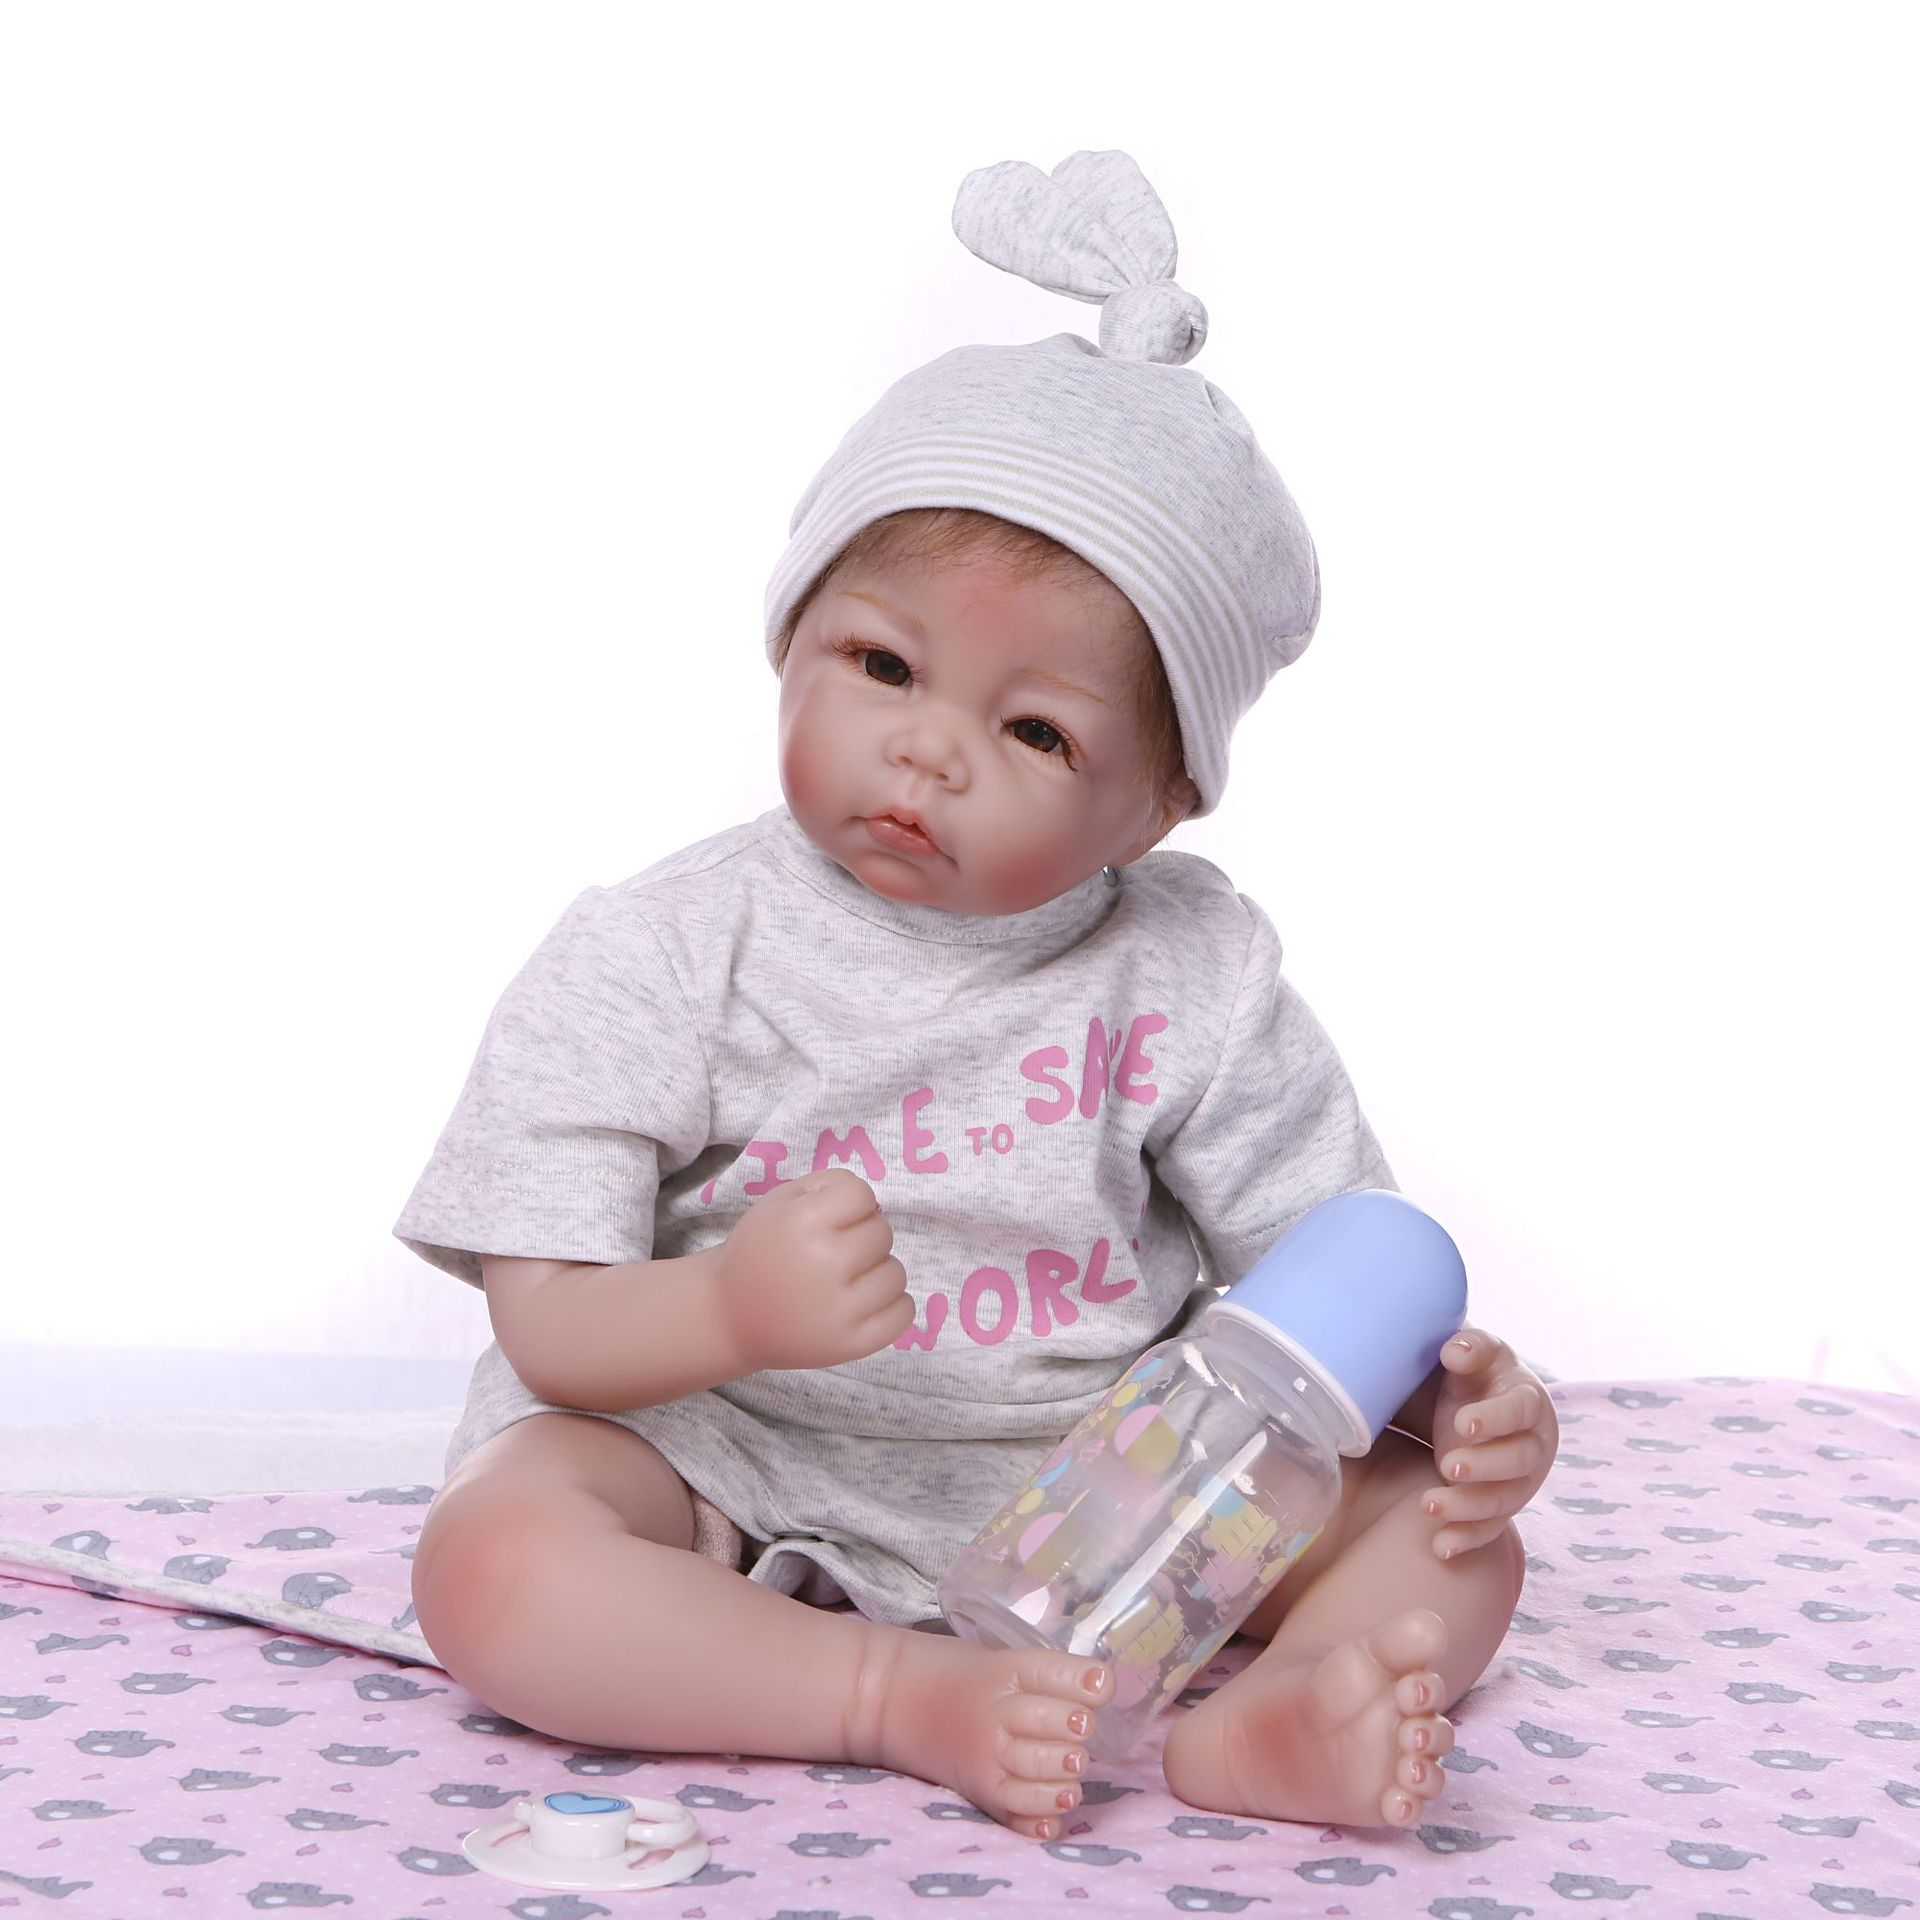 NPK Brand Genuine Product High Quality Handmade Doll Hot Selling Electricity Supplier Supply Of Goods Non-mainstream Blue Ocean